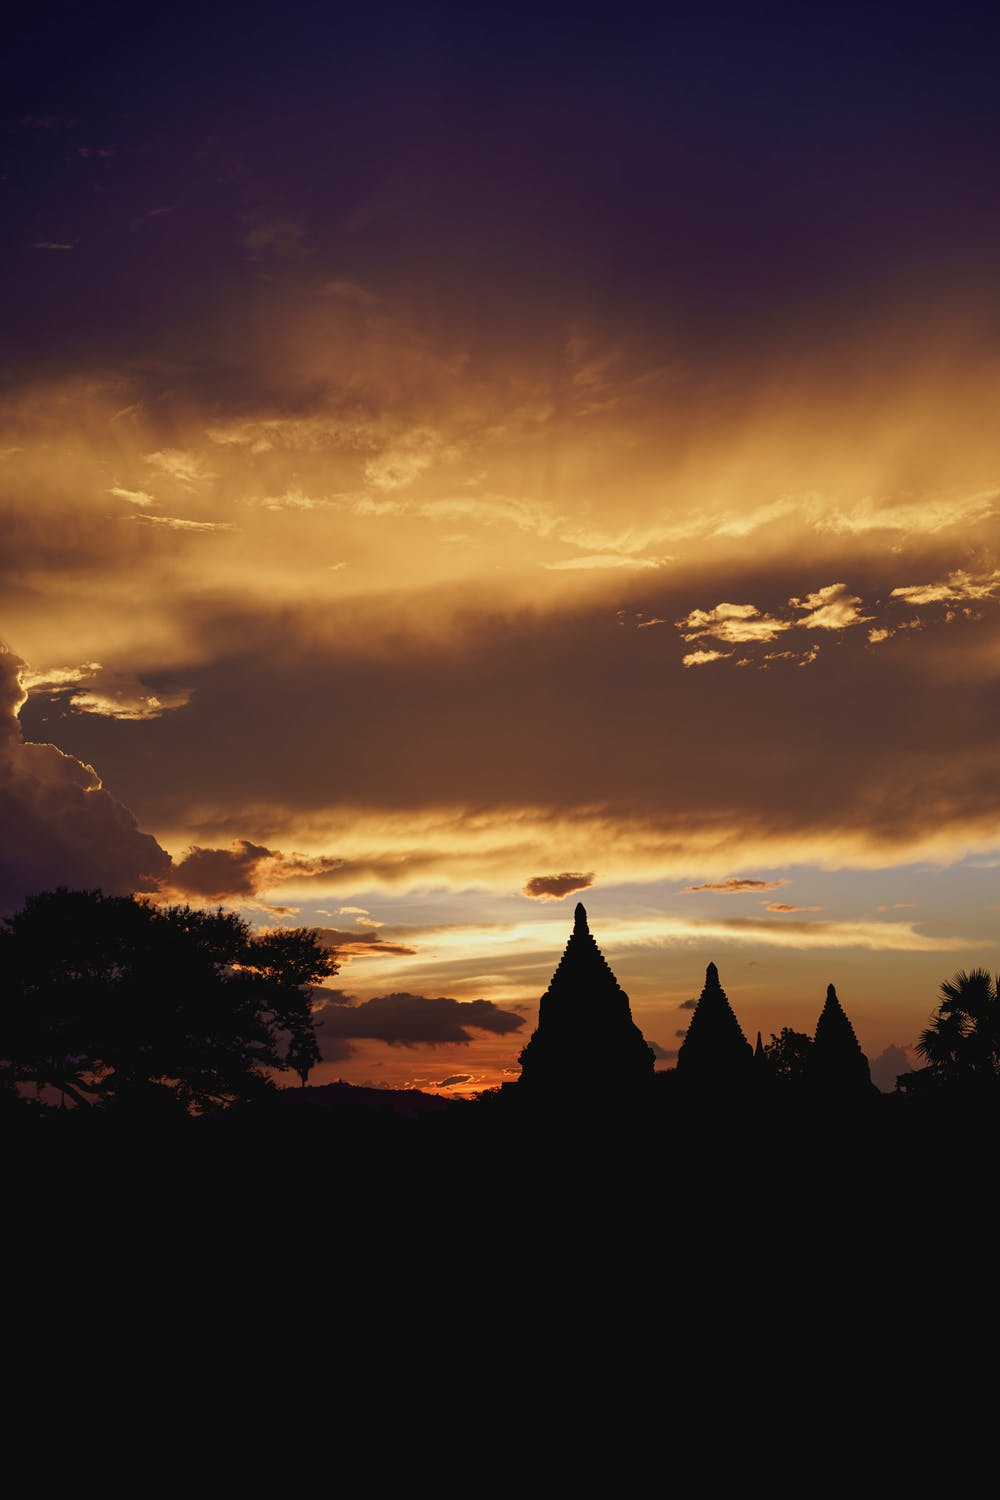 Waves of clouds across the sky during sunset with three stone pagodas at the horizon